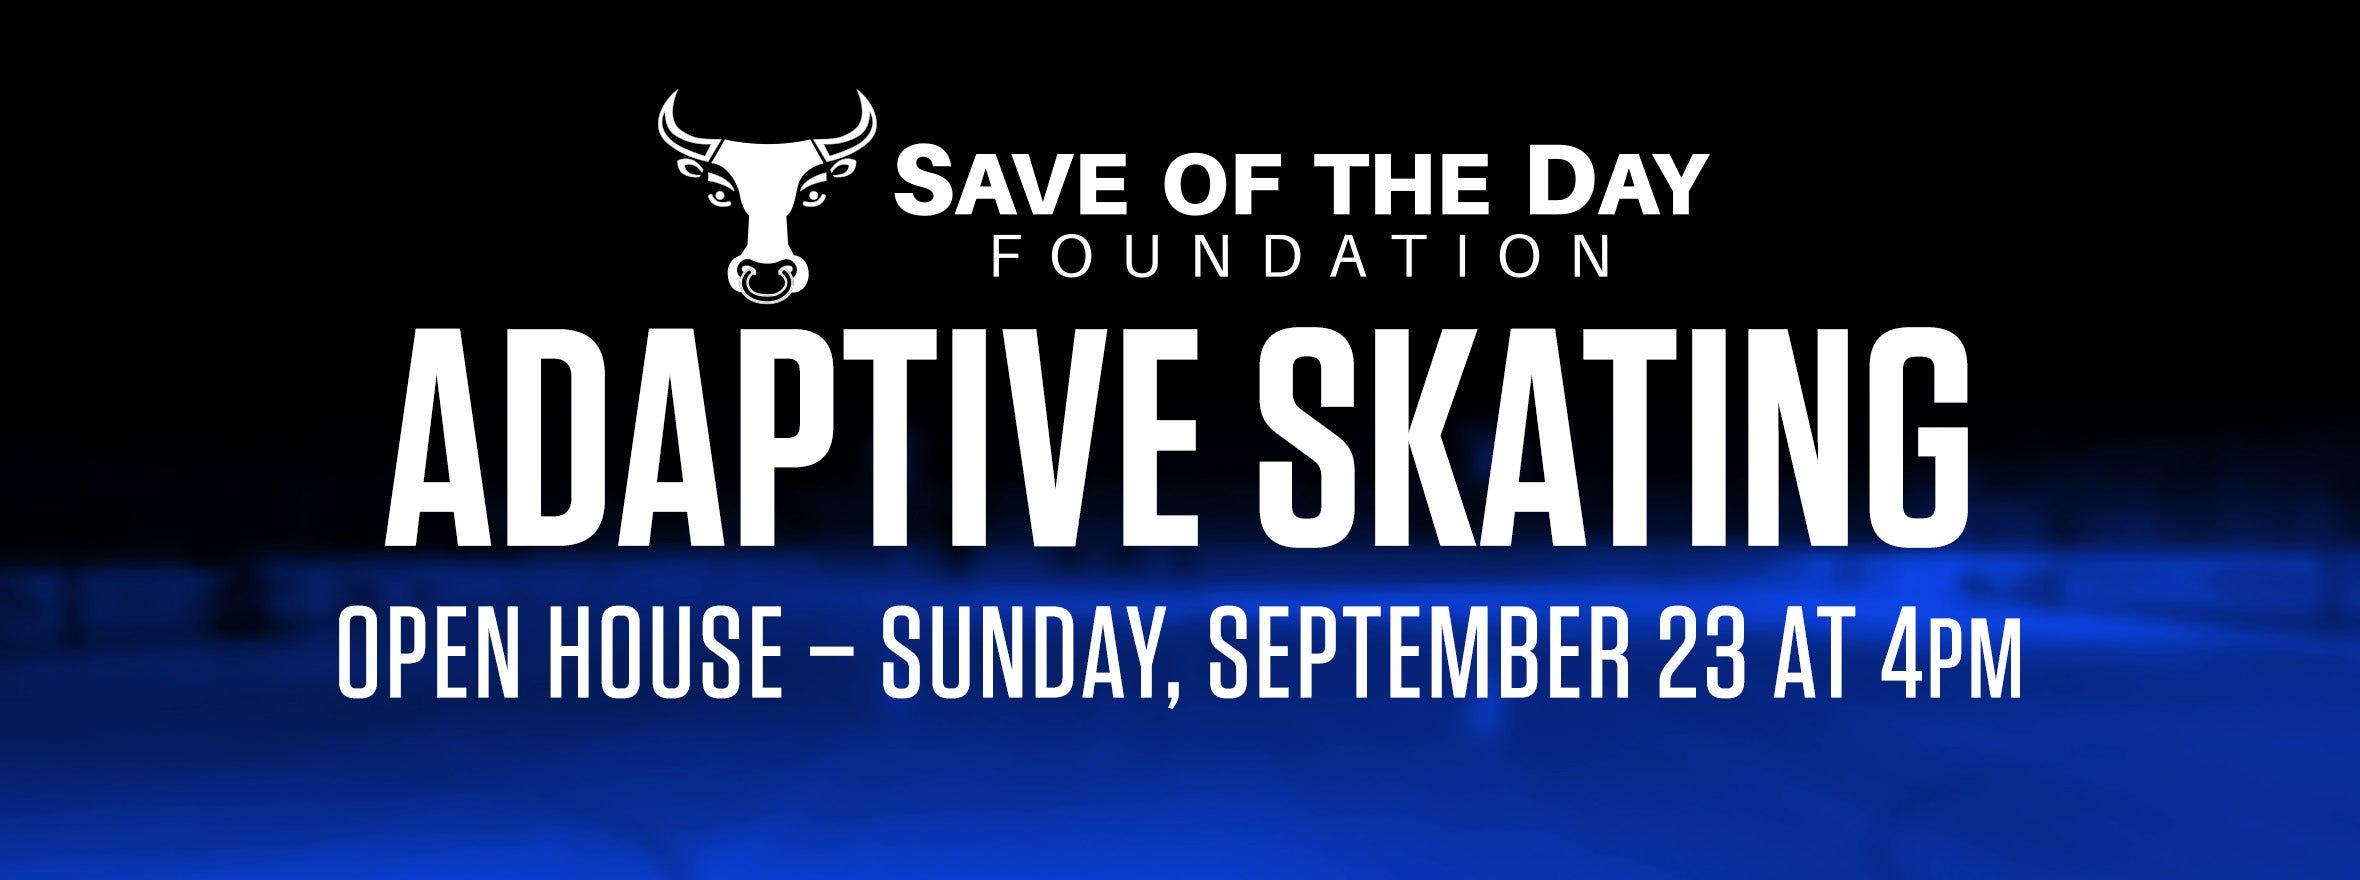 SAVE OF THE DAY FOUNDATION ANNOUNCES ADAPTIVE SKATING PROGRAM